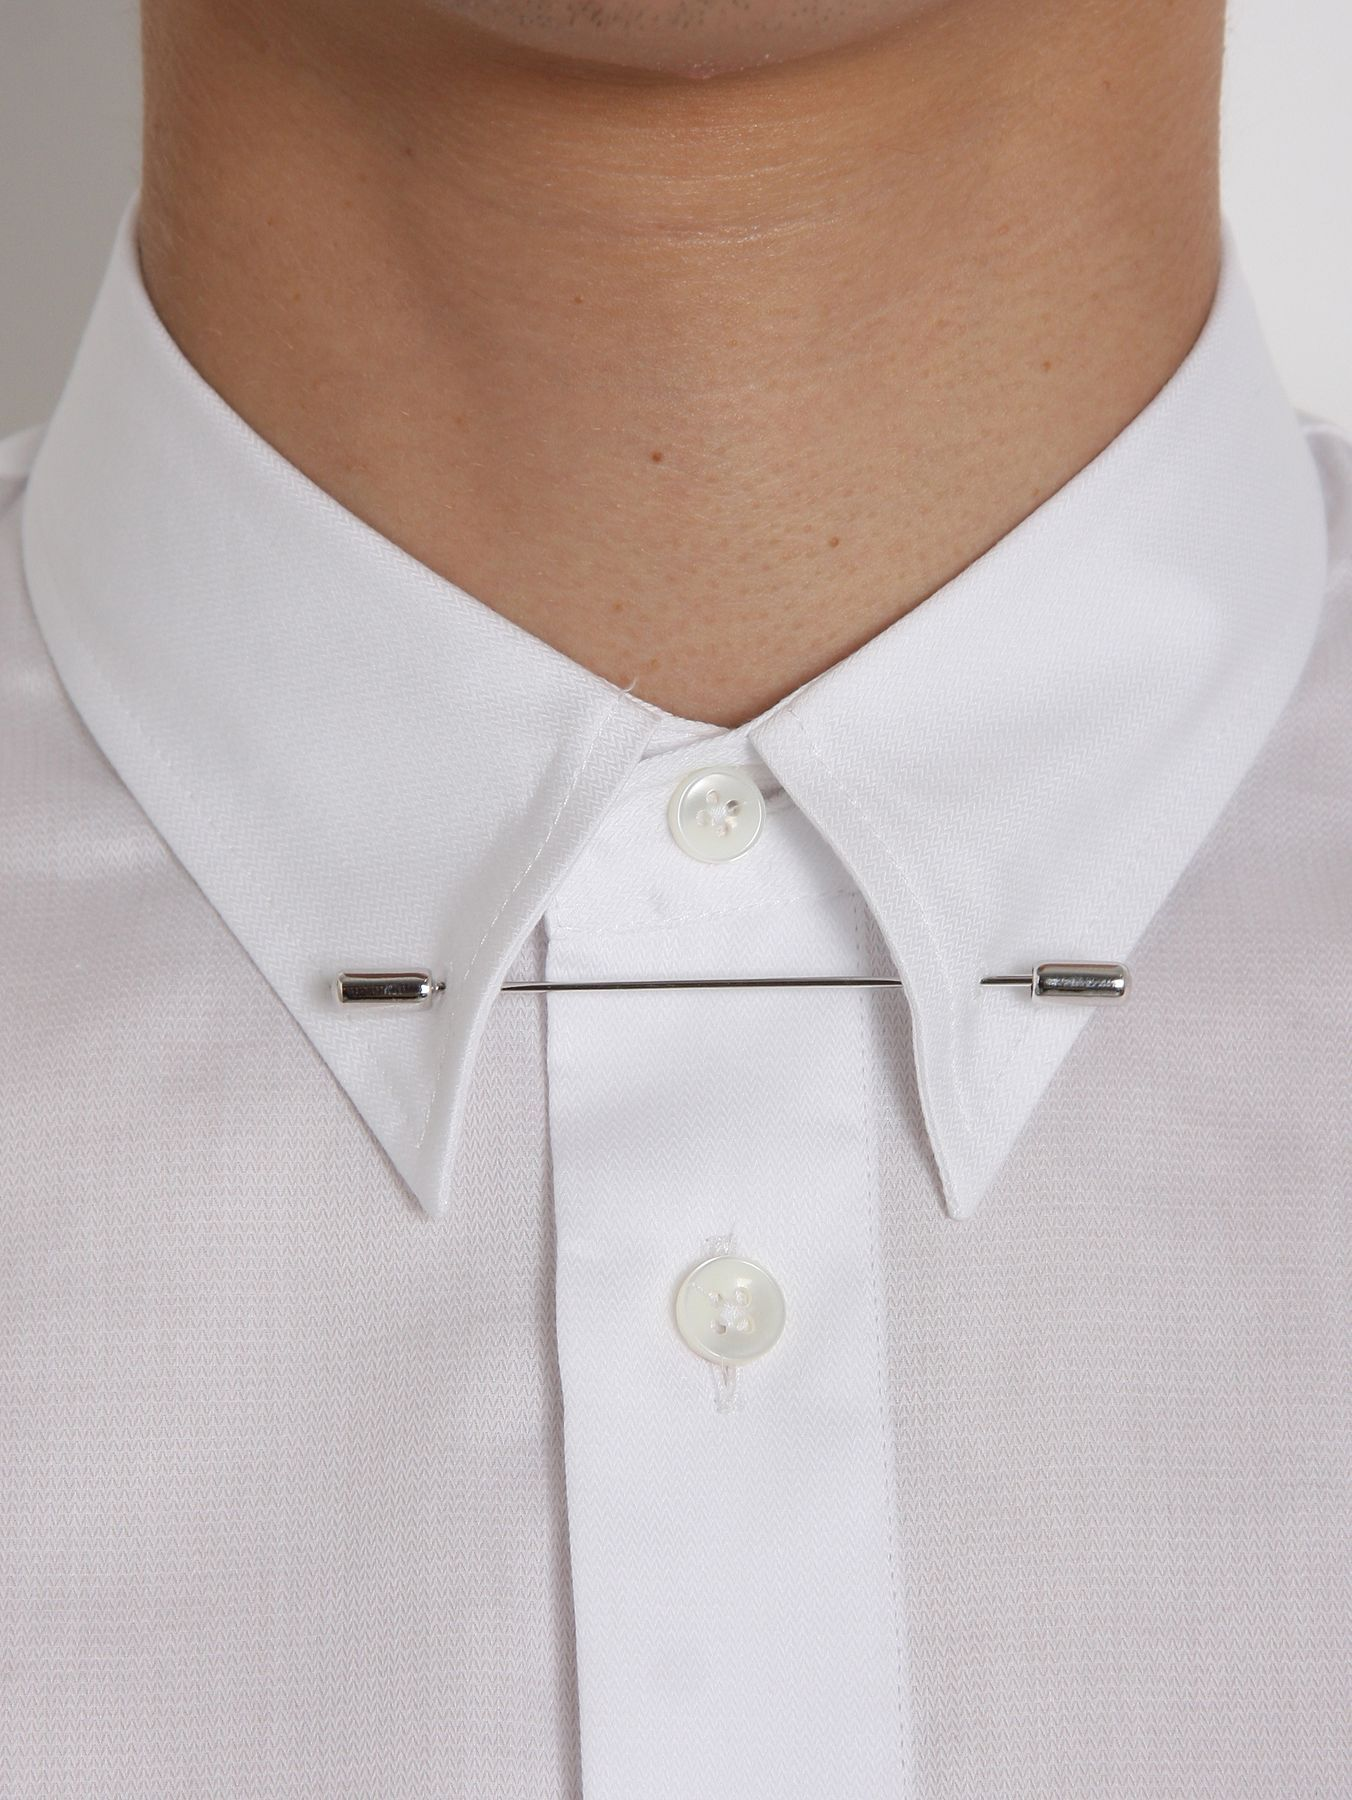 Collar Bar Collar Bar Mensfashion Http Www